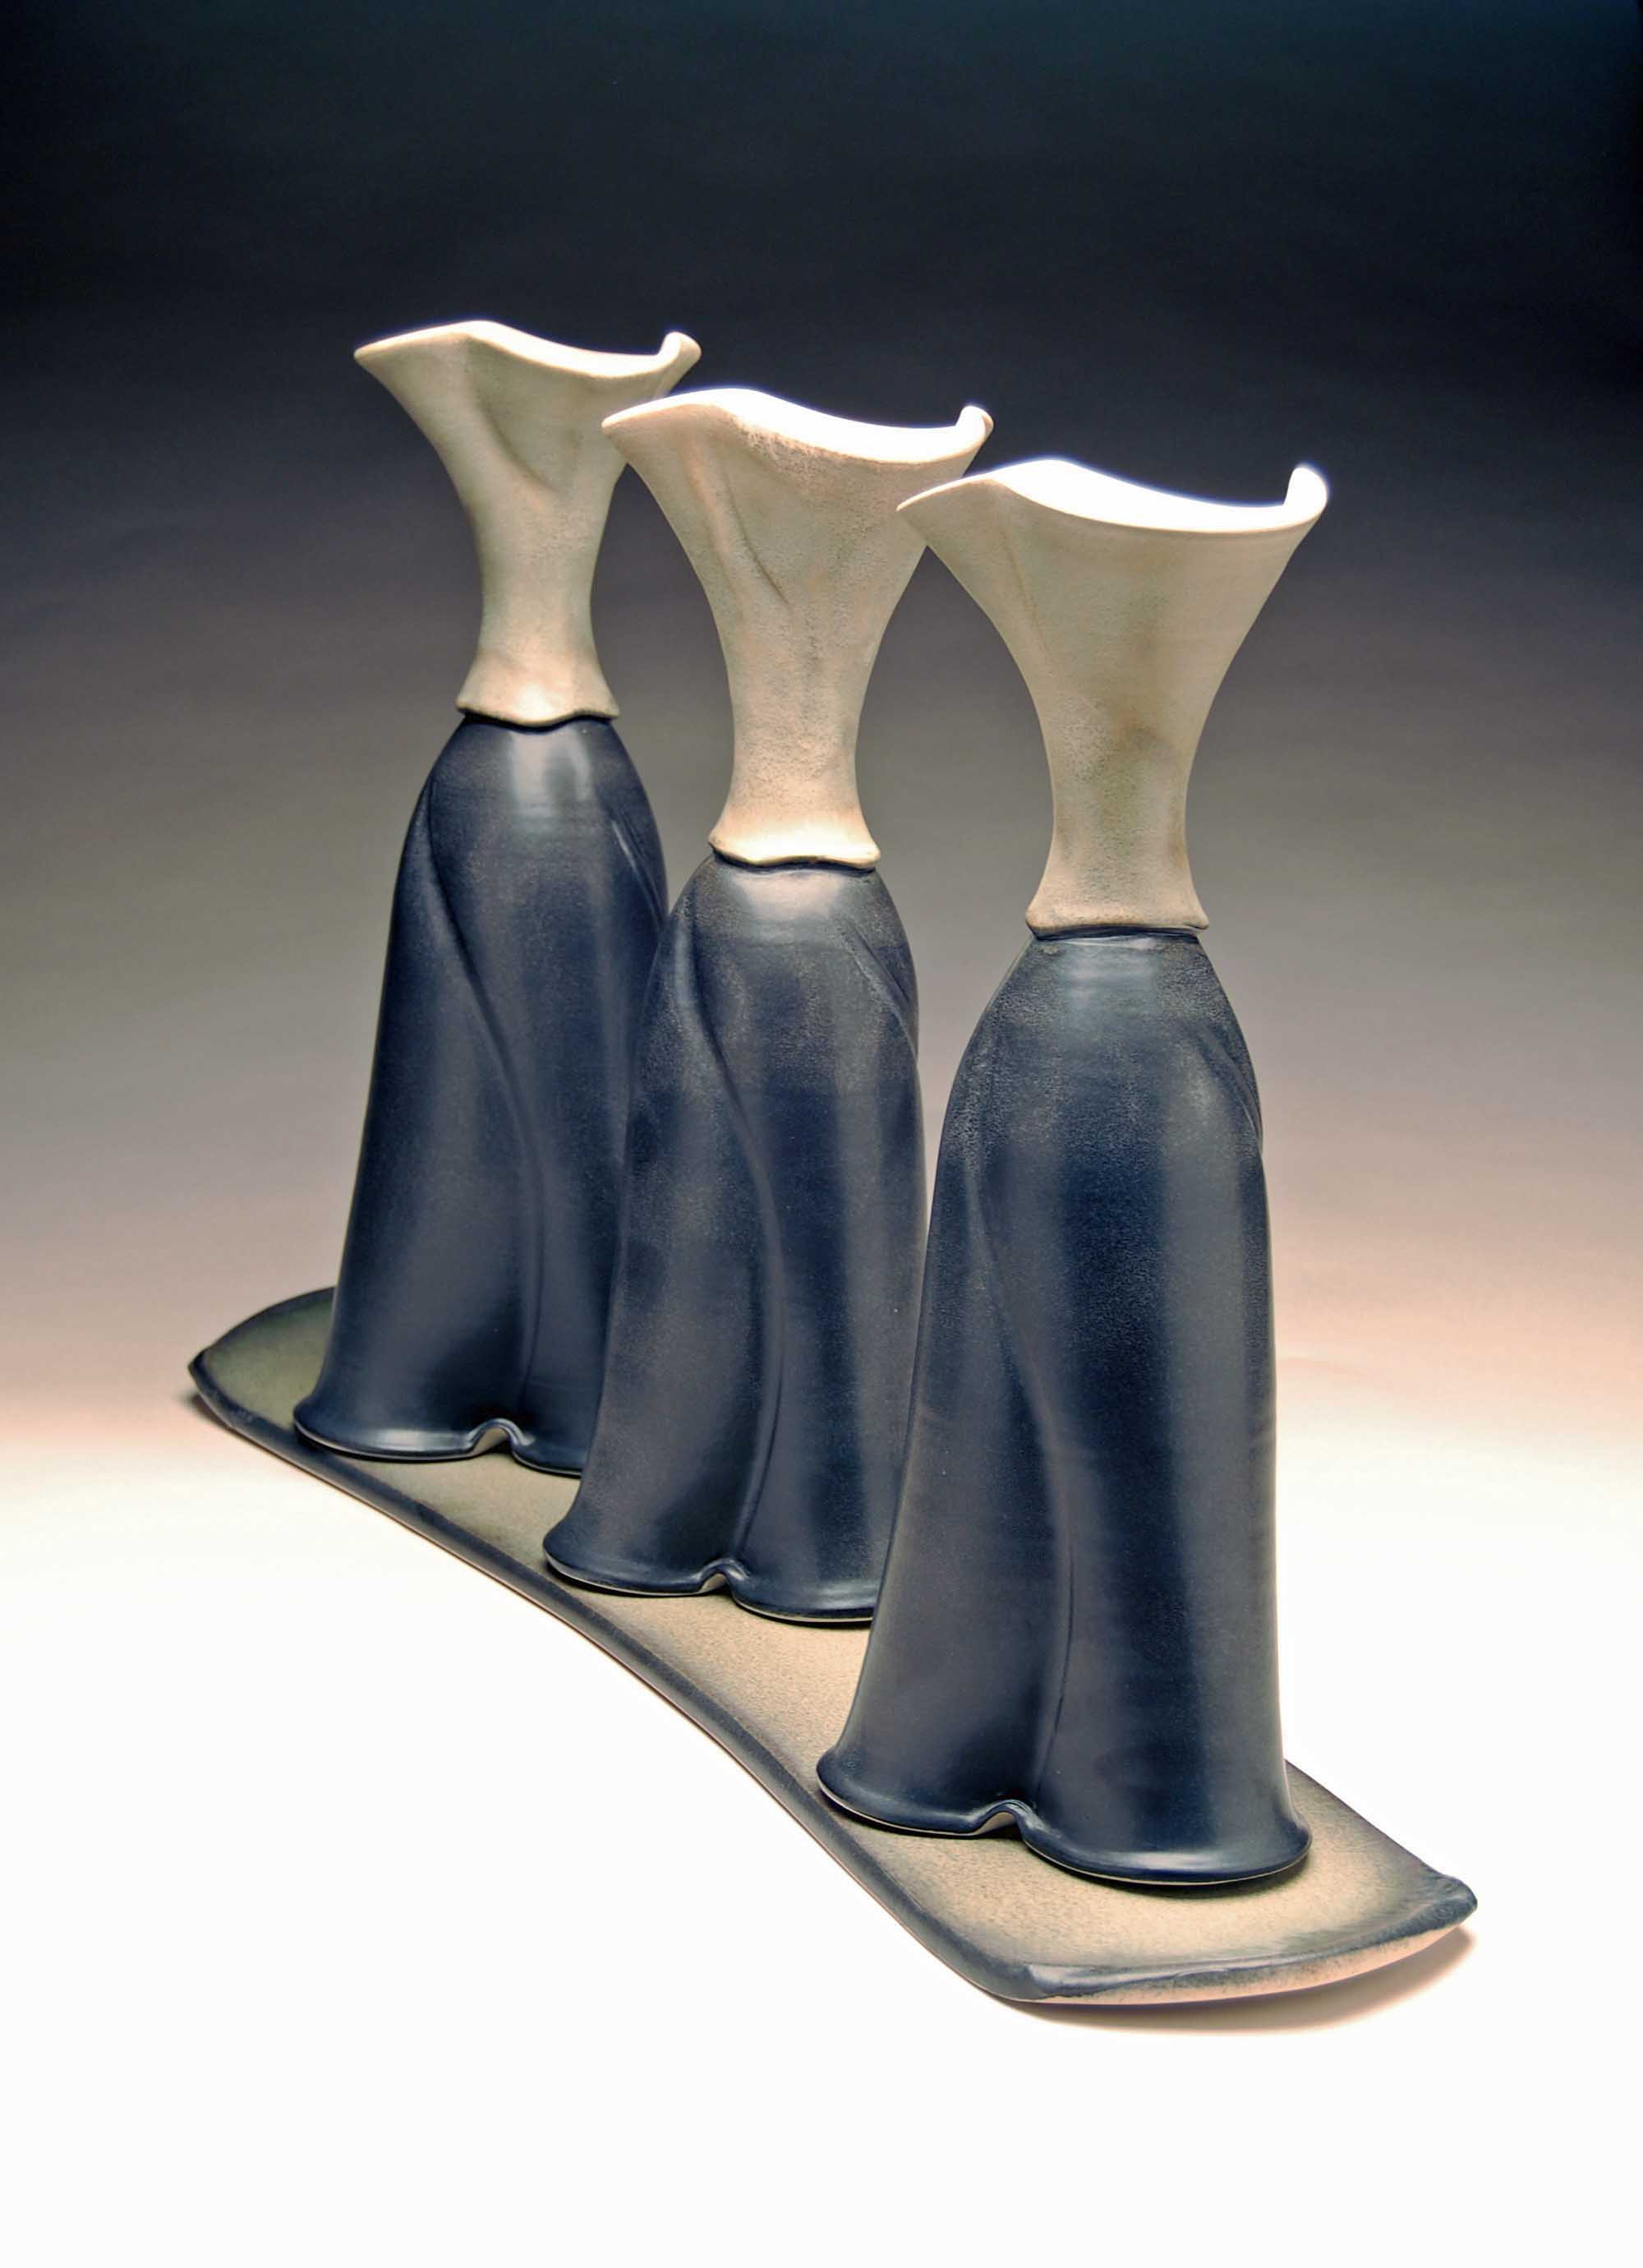 conner burns - three sisters vase set